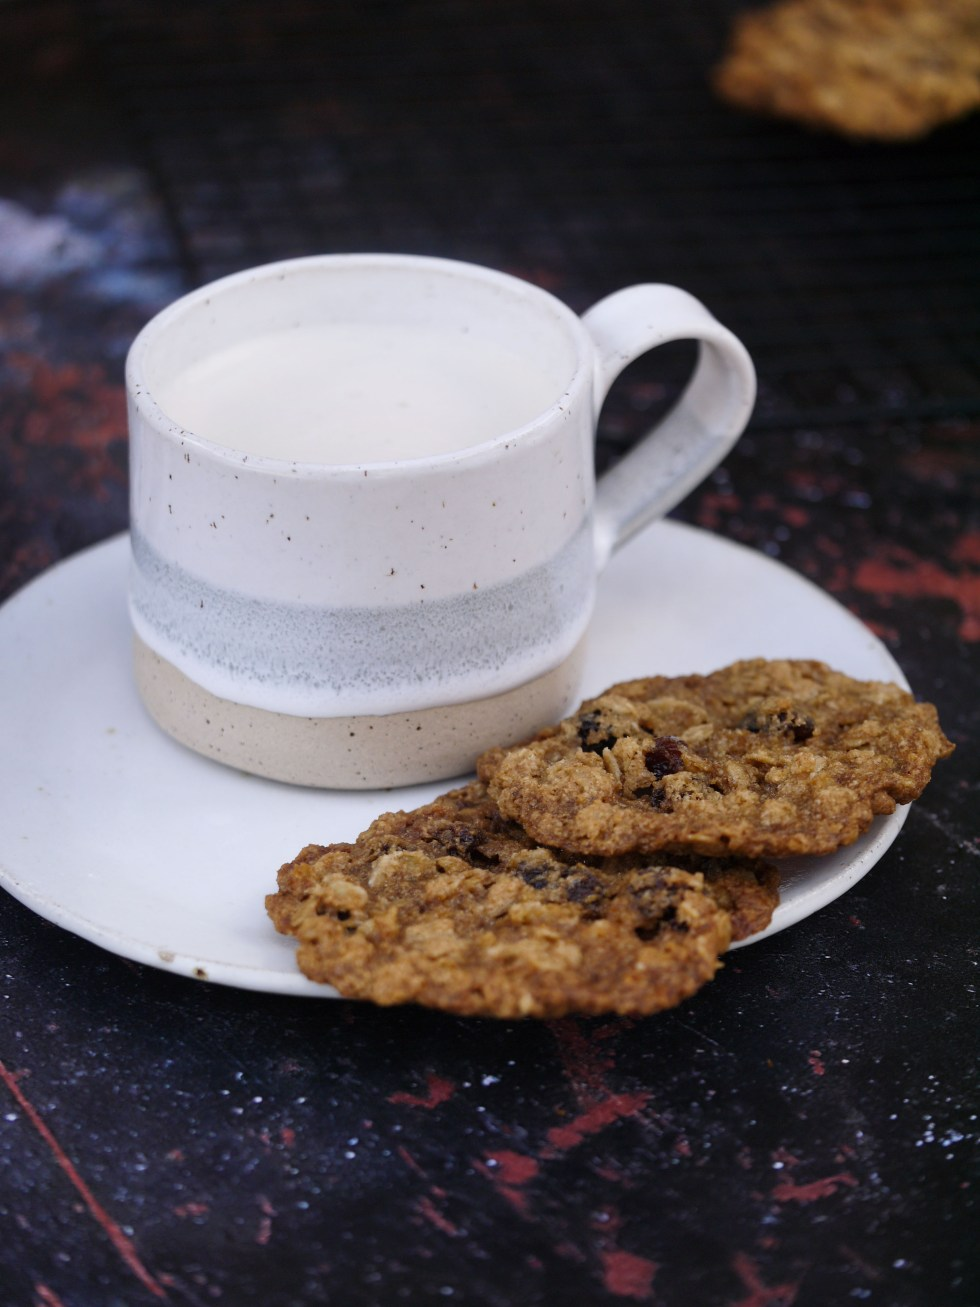 Coffee on saucer with two chewy oatmeal and sultana cookies